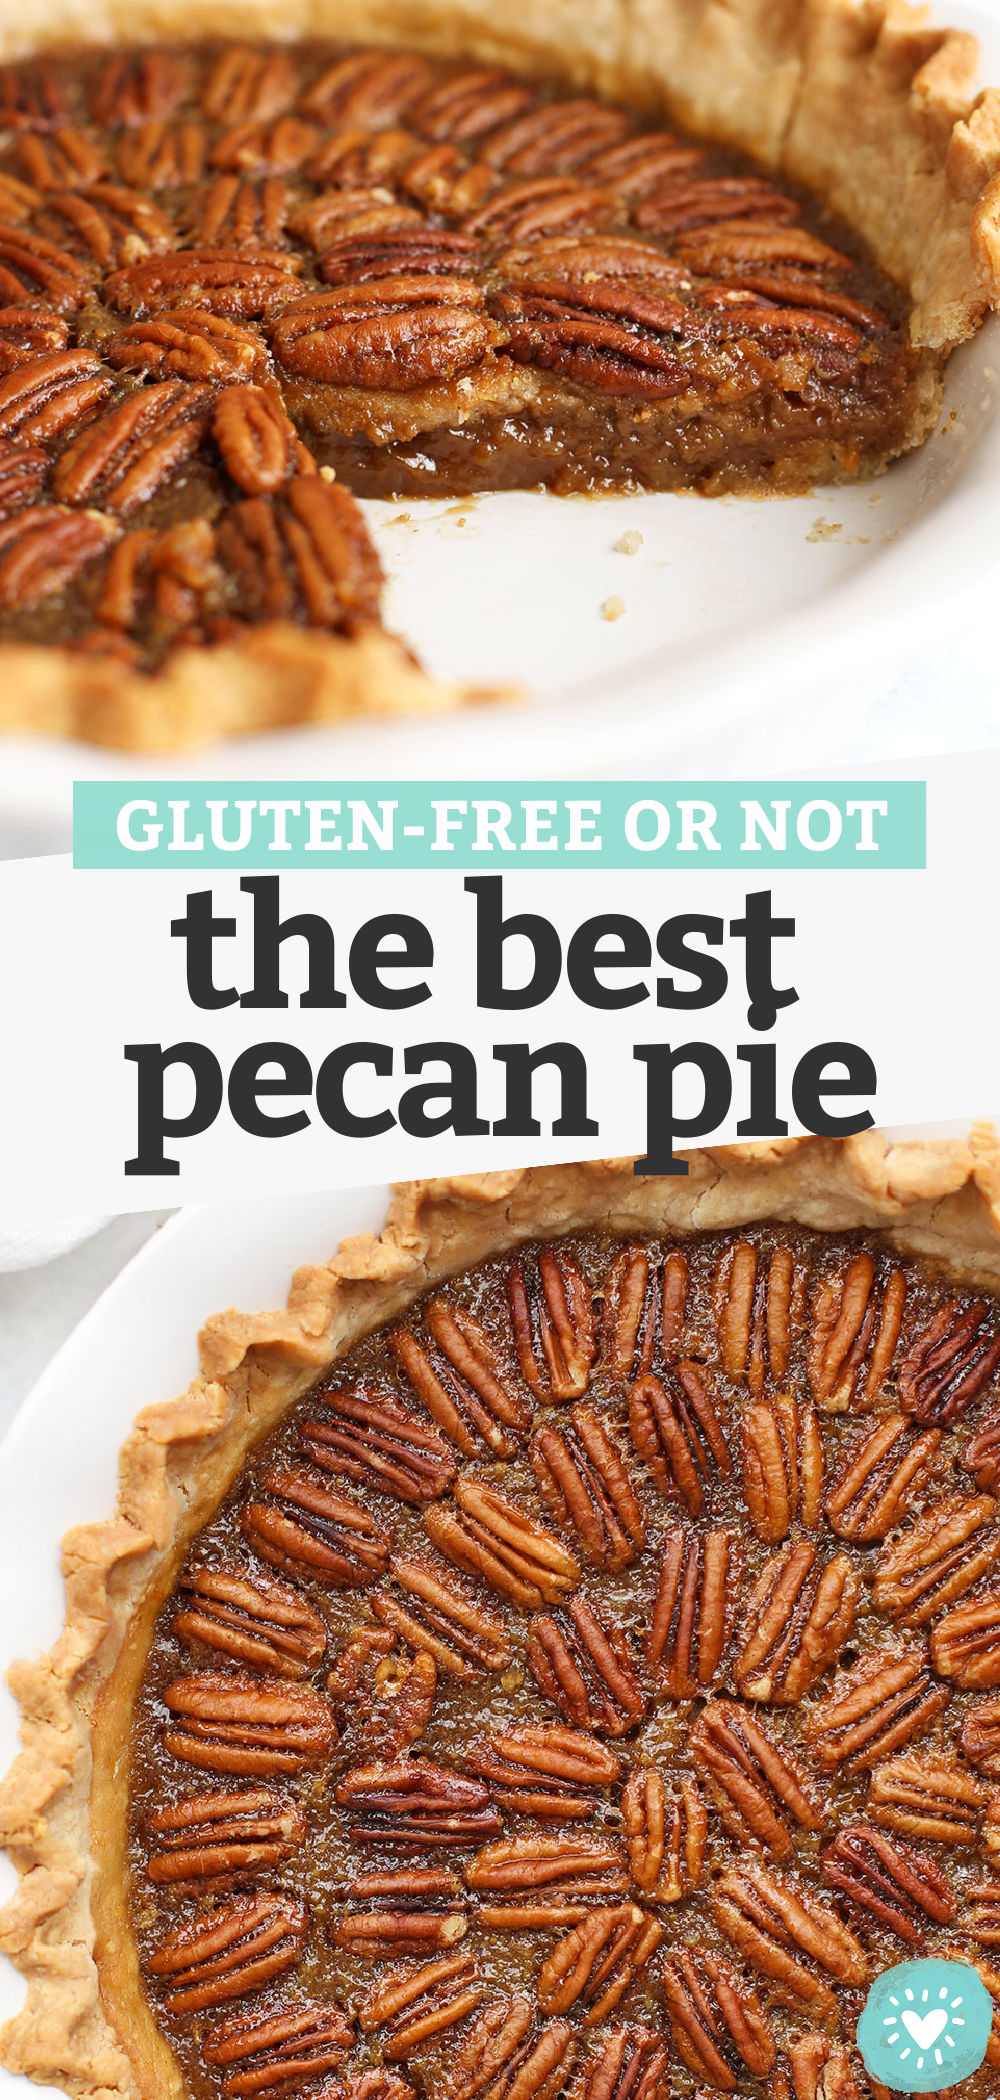 The BEST Pecan Pie Recipe - This yummy pecan pie is made without corn syrup. The filling is incredible and I love all the crust options. Gluten Free, Dairy Free & Paleo-Friendly! // pecan pie // paleo thanksgiving // gluten free thanksgiving // thanksgiving pie #pie #pecanpie #thanksgiving #glutenfree #paleo